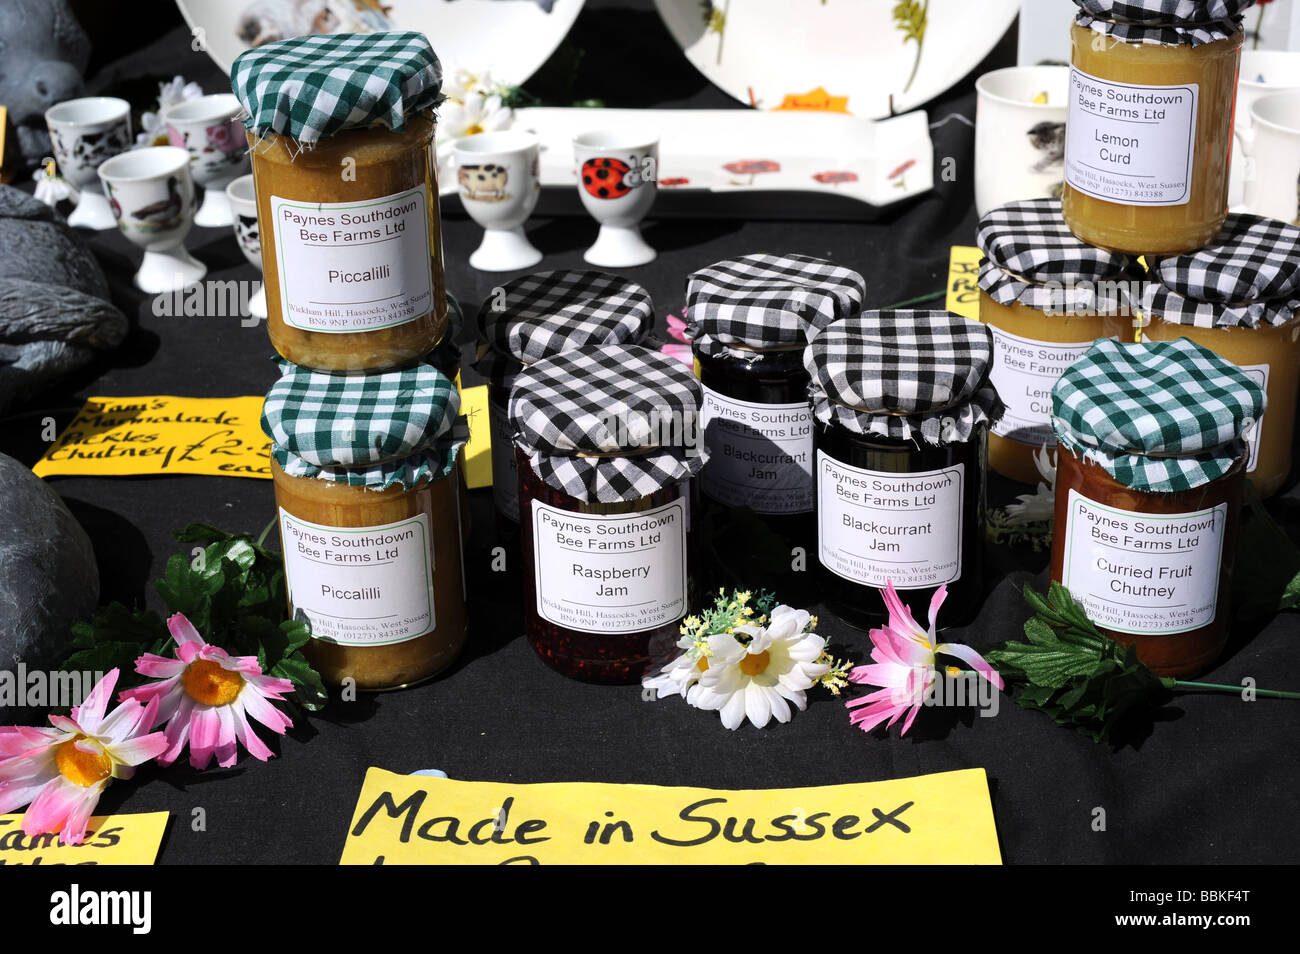 jars of homemade jam and pickles on sale on a stall in. Black Bedroom Furniture Sets. Home Design Ideas